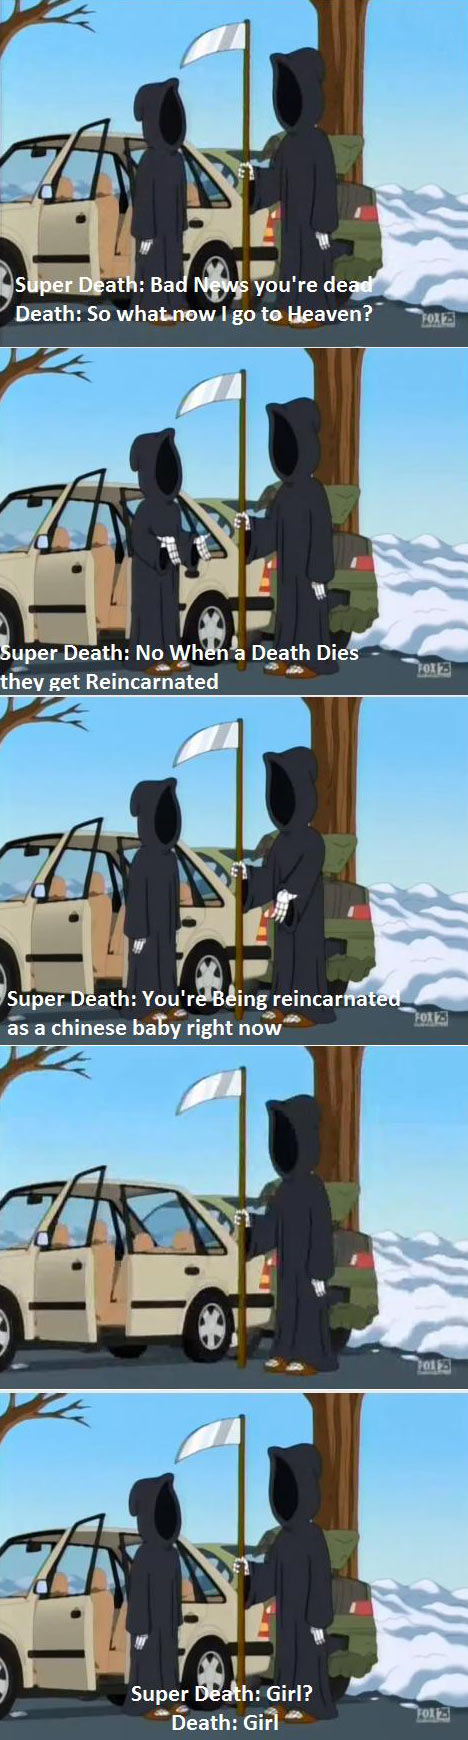 What happens when Death dies…